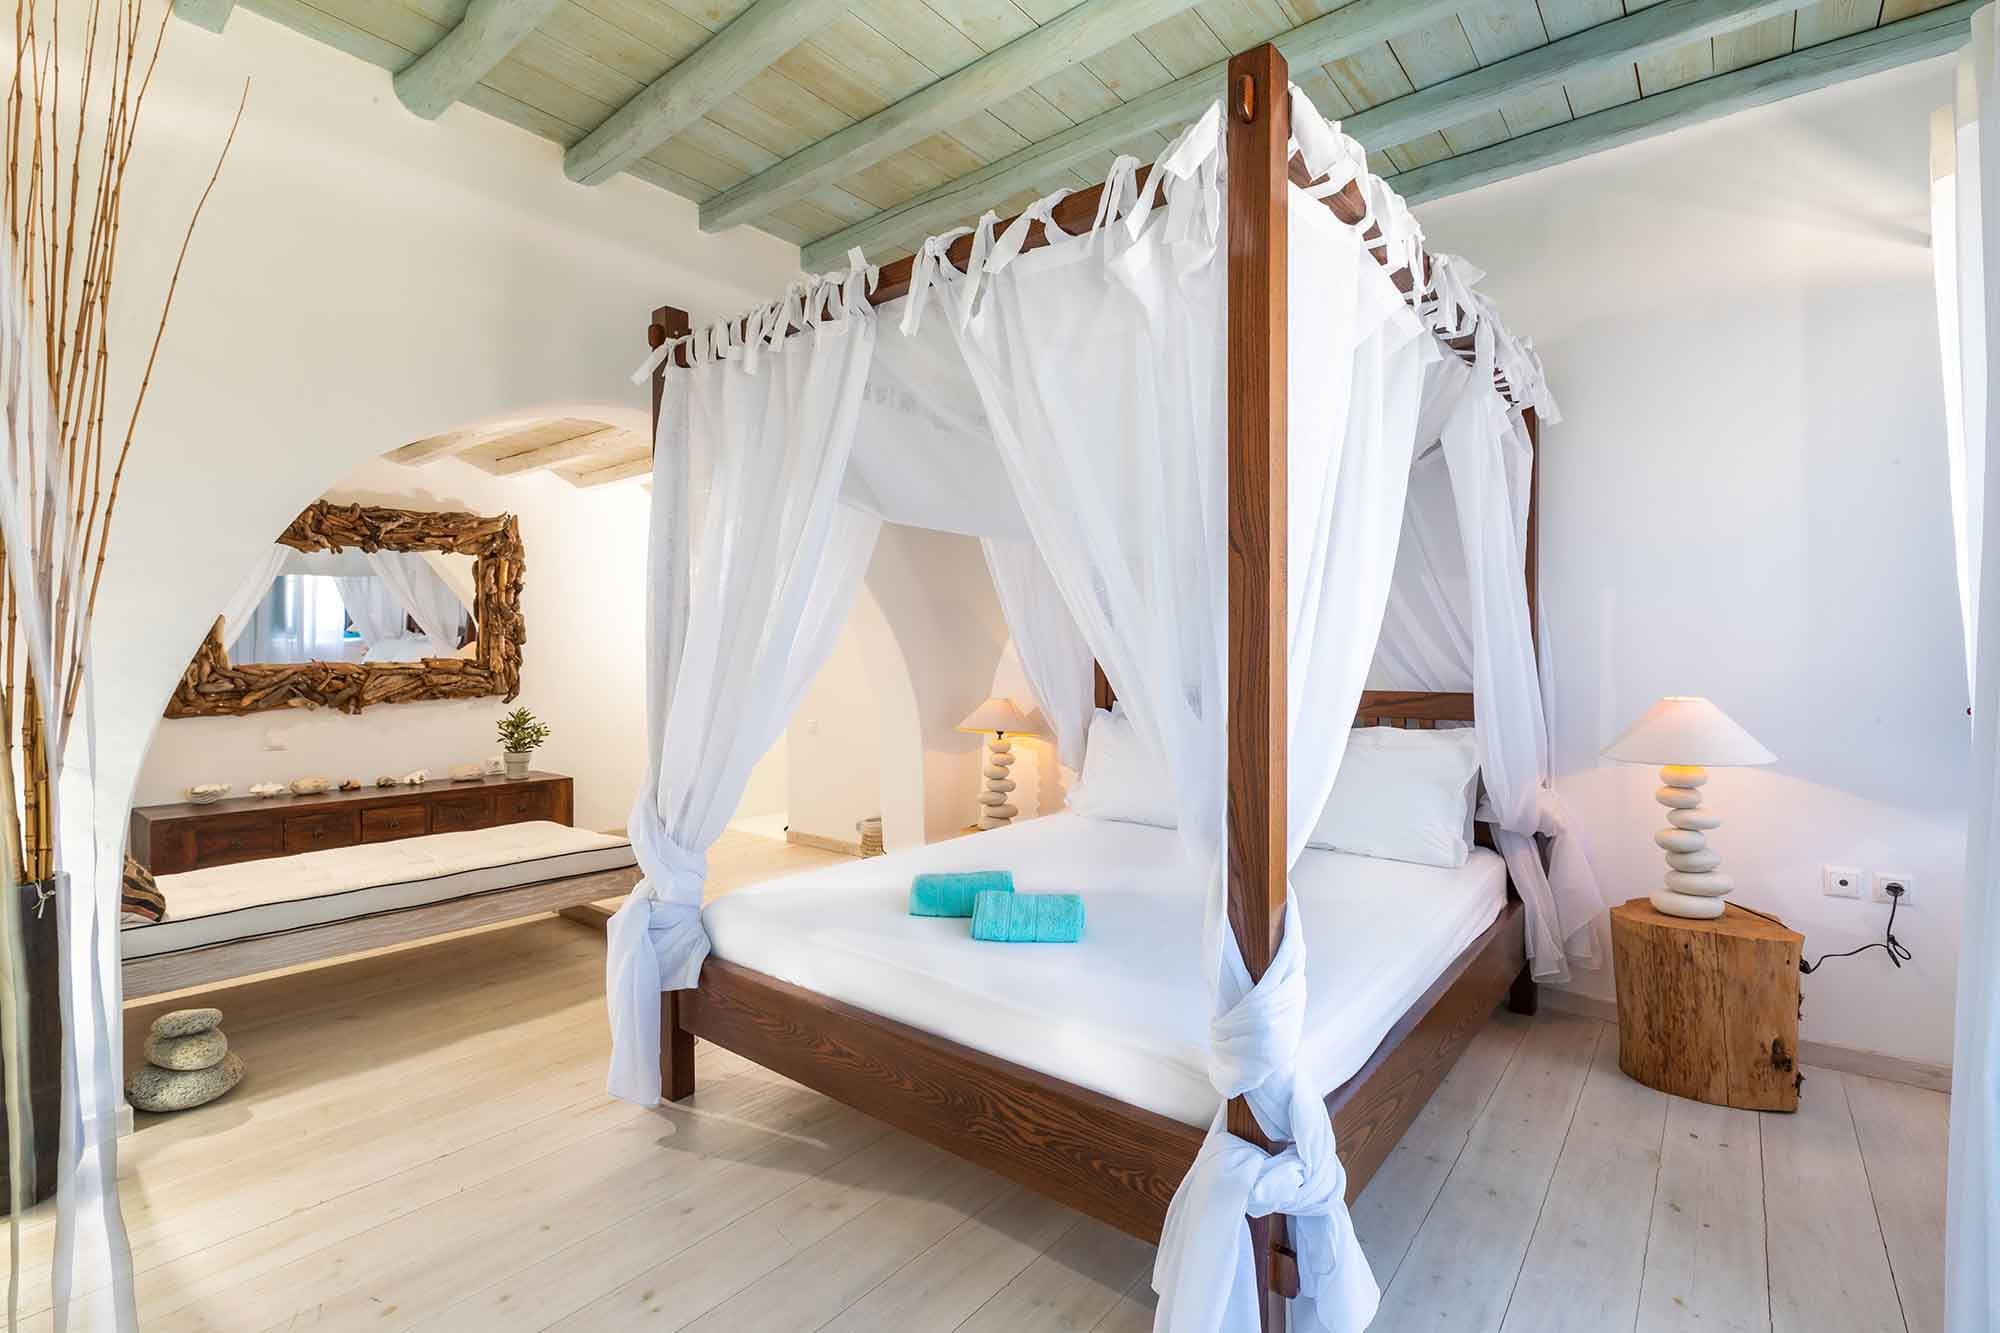 RENT A LUXURIOUS VILLA BY THE SEA IN MYKONOS - VILLA KARKOS - room decoration